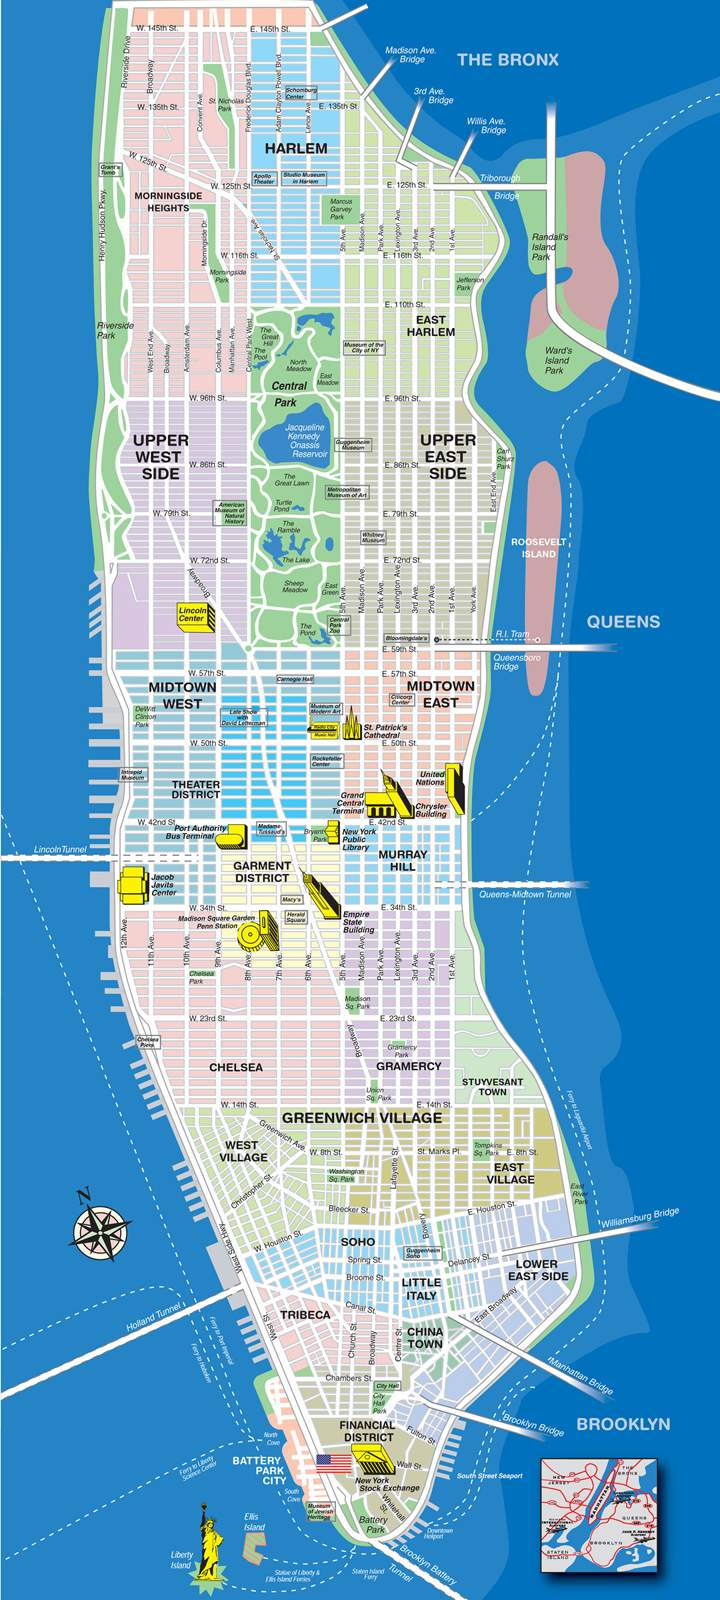 Large Manhattan Maps for Free Download and Print | High ... on ny climate map, newyork map, ny camping map, ny airport map, ny transportation map, ny city map, ny hunting map, ny casinos map, ny fun map, ny theatre map, new york city tourist map, ny wine map, ny parking map, ny hiking map, ny weather map, ny shopping map, ny cycling map, ny tour map, ny museums map, new york sites map,